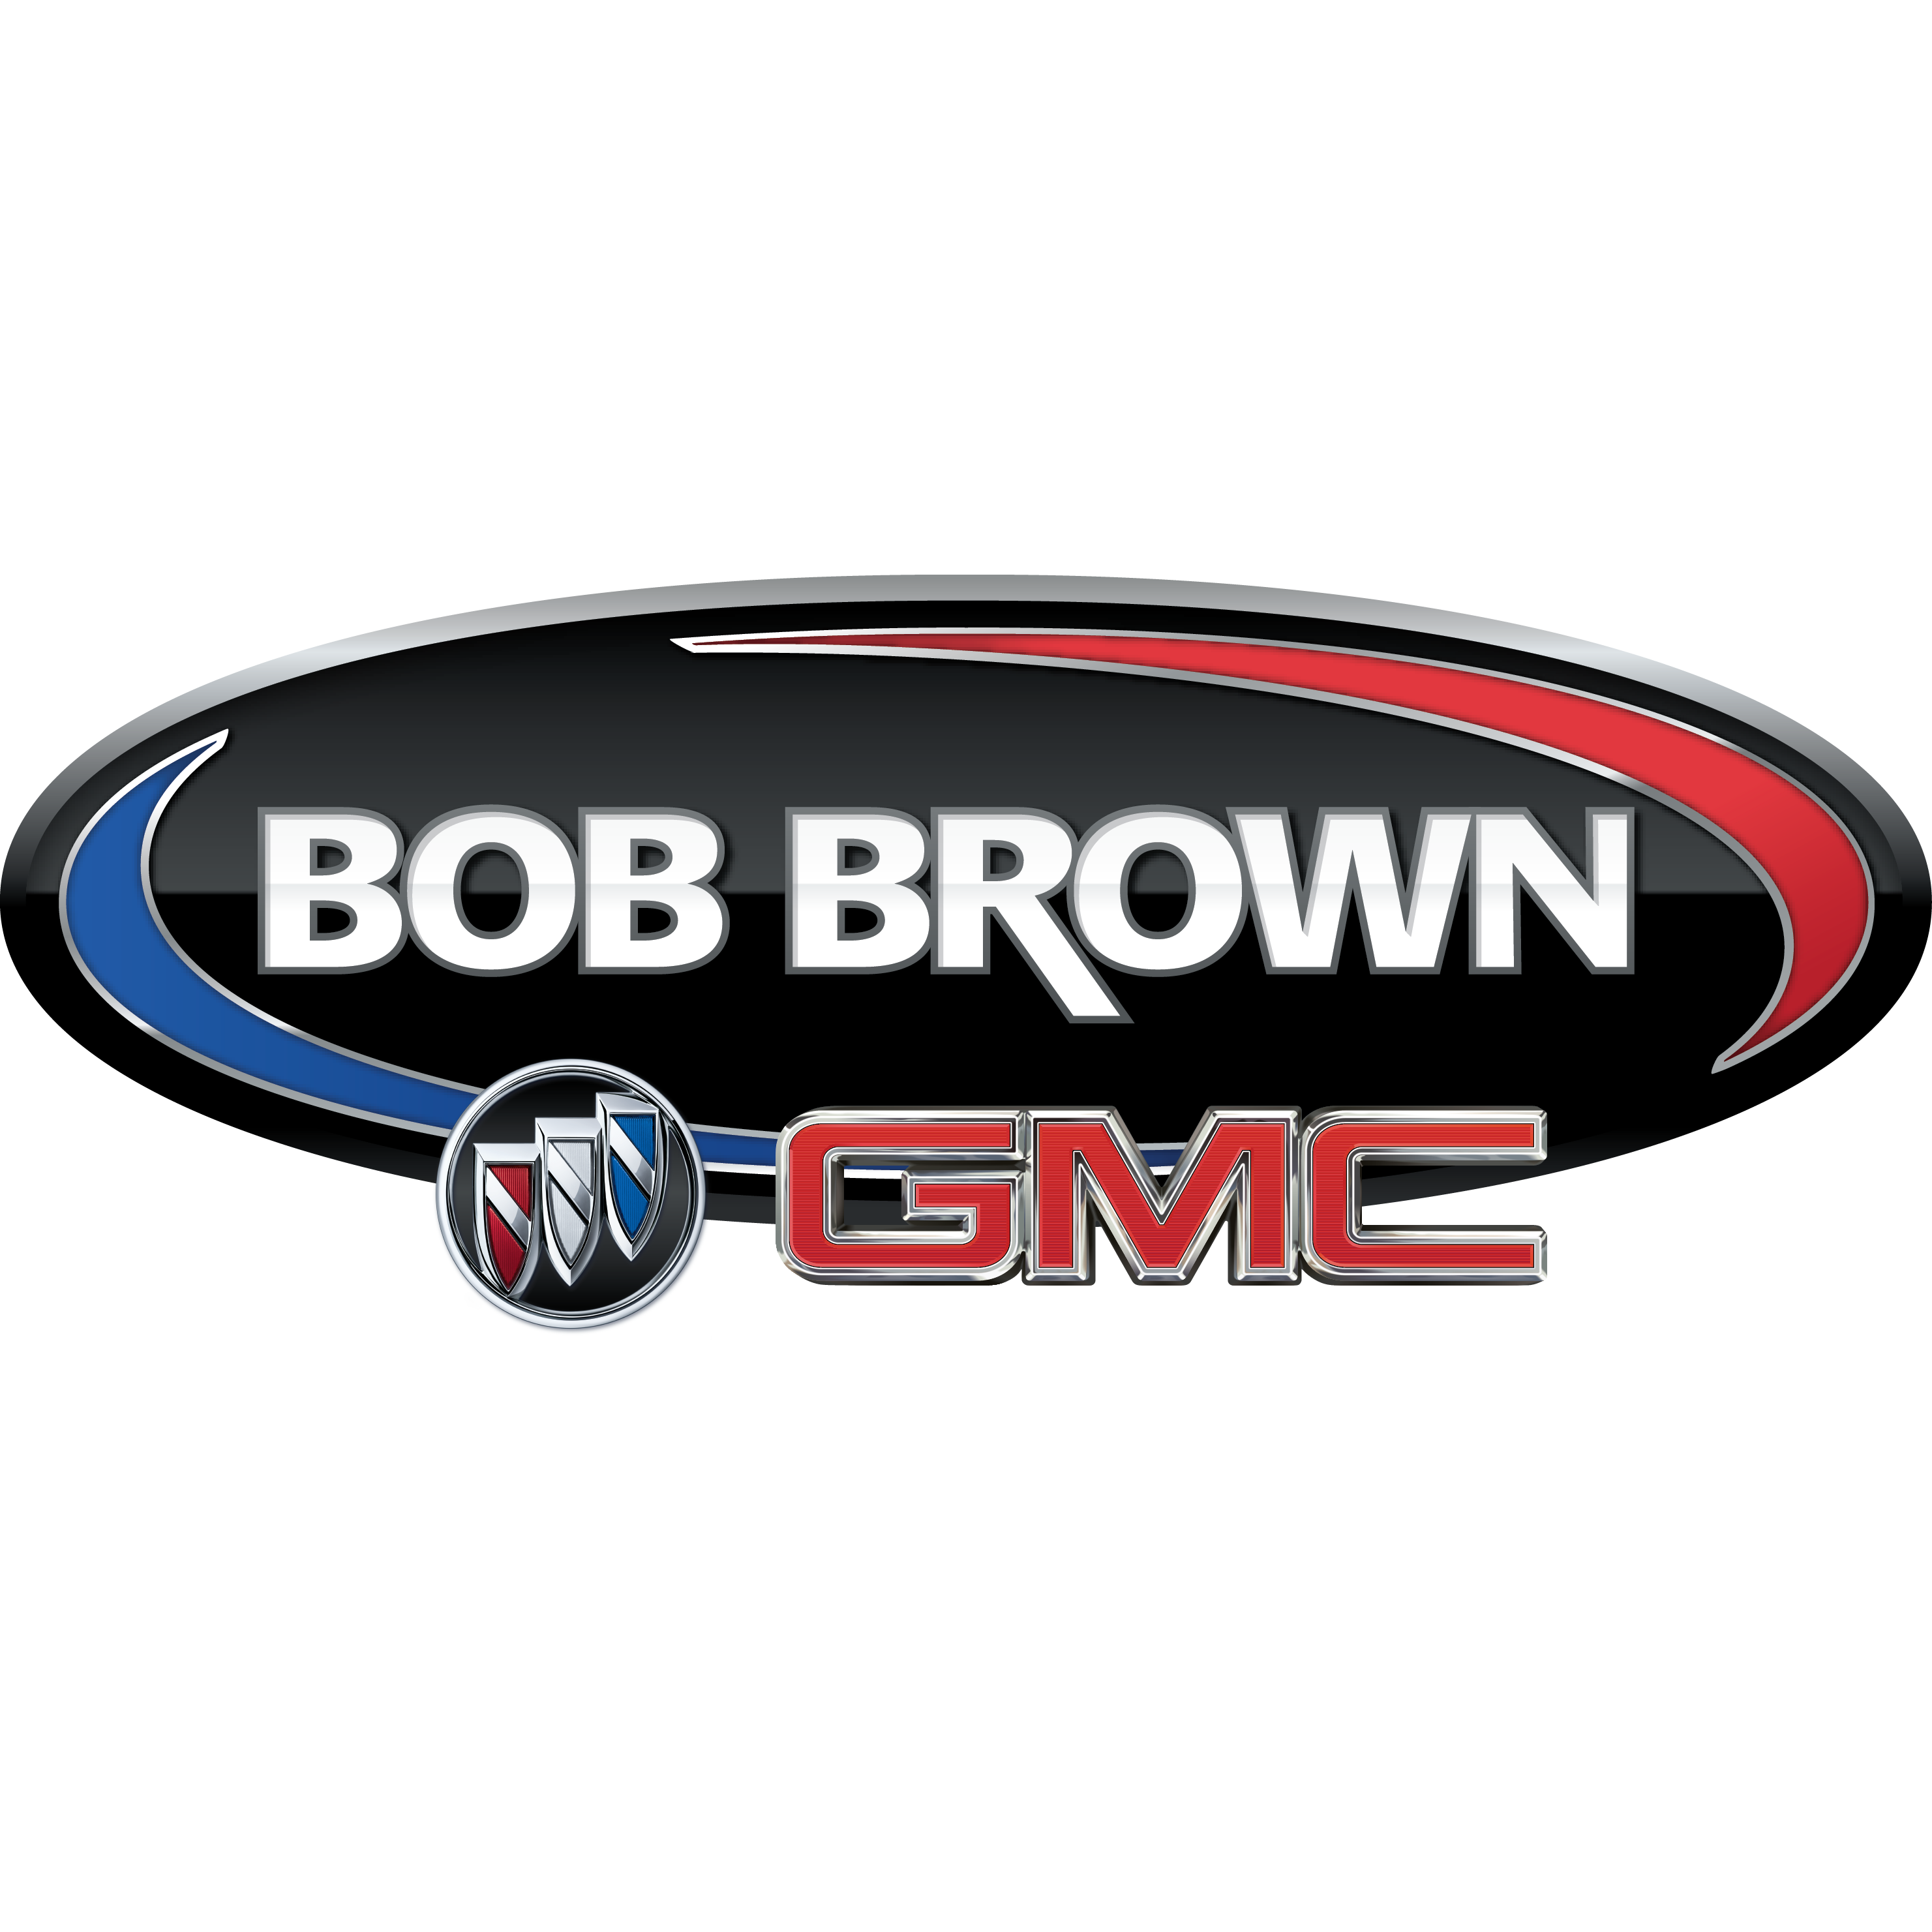 Gmc Dealers In Idaho >> Bob Brown Buick GMC in Ankeny, IA - Auto Dealers: Yellow Pages Directory Inc.